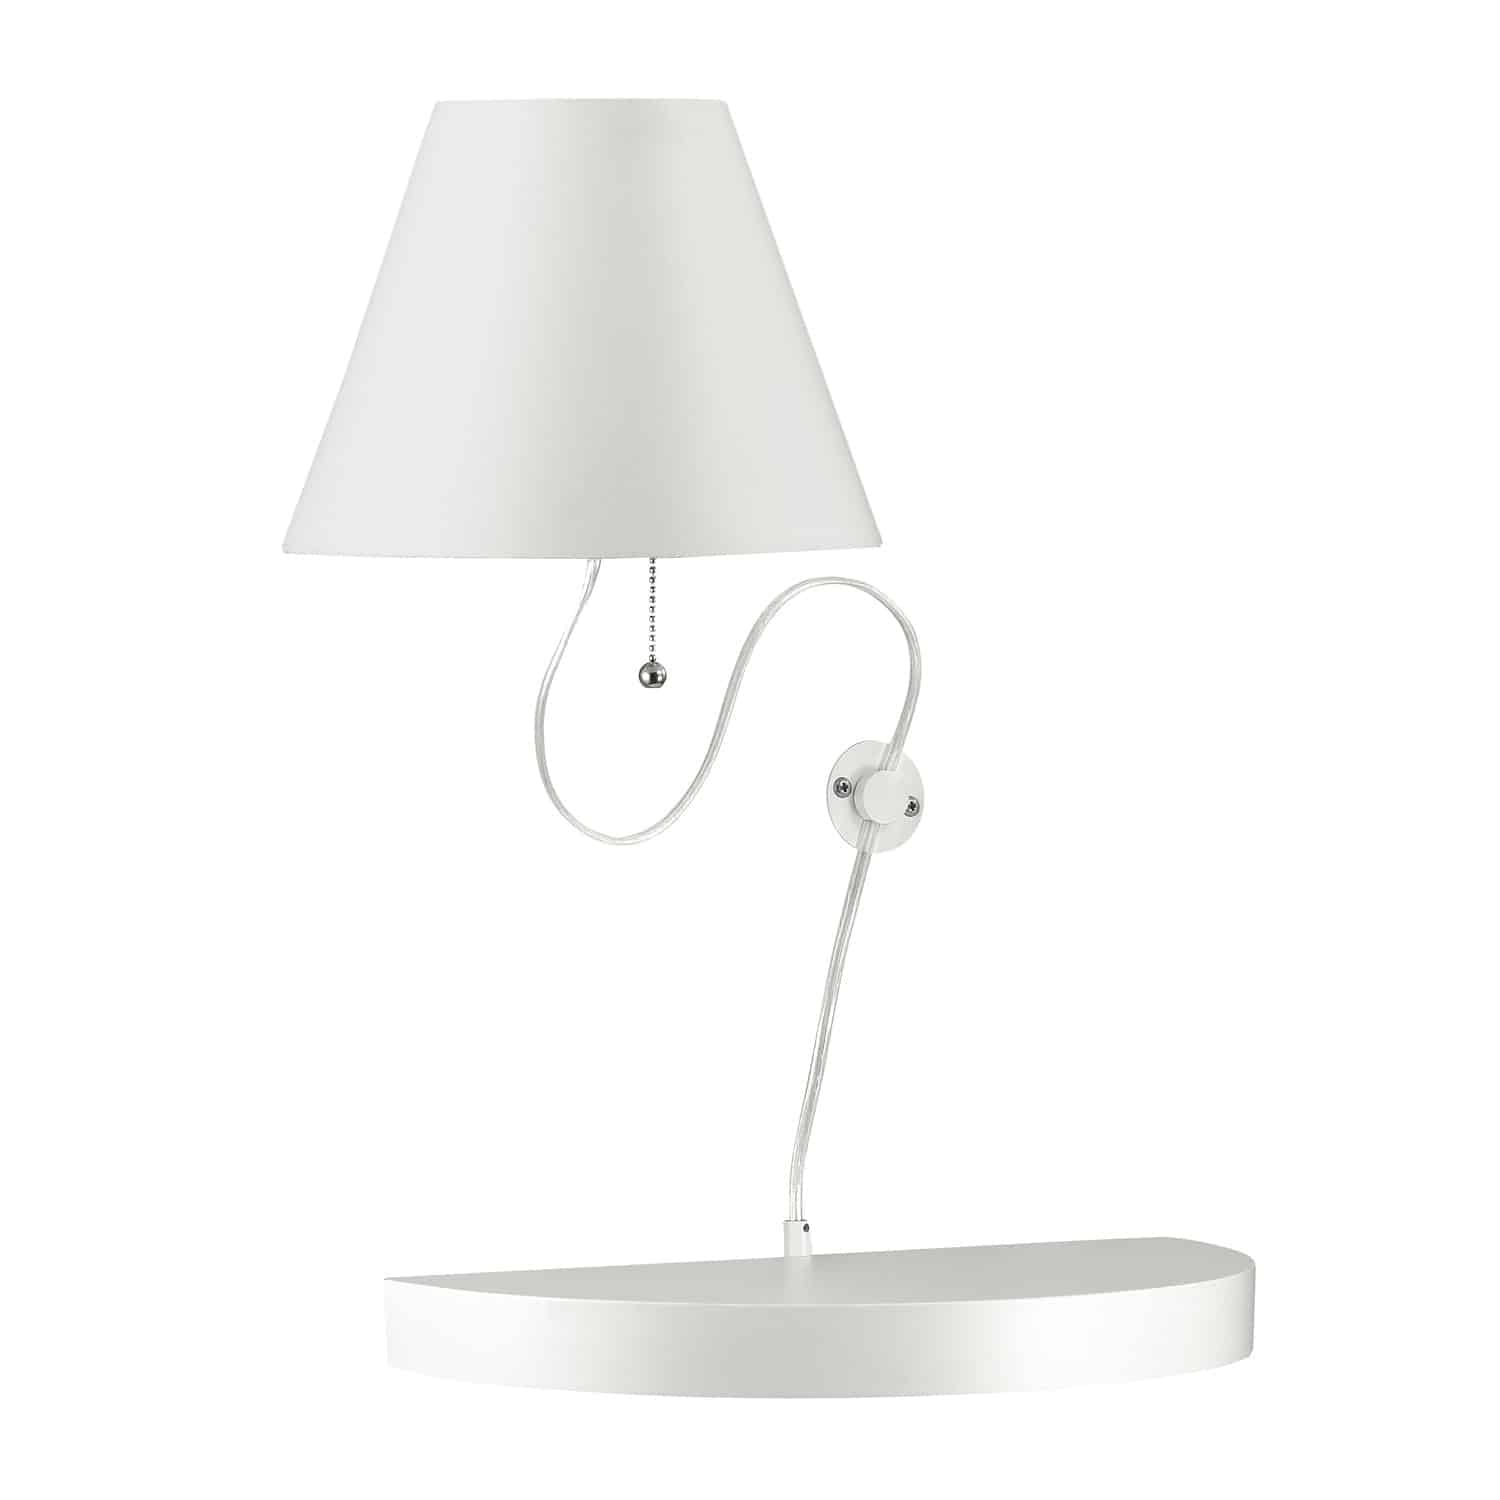 1 Light Incandescent Wall Sconce Matte White Finish with White Shade